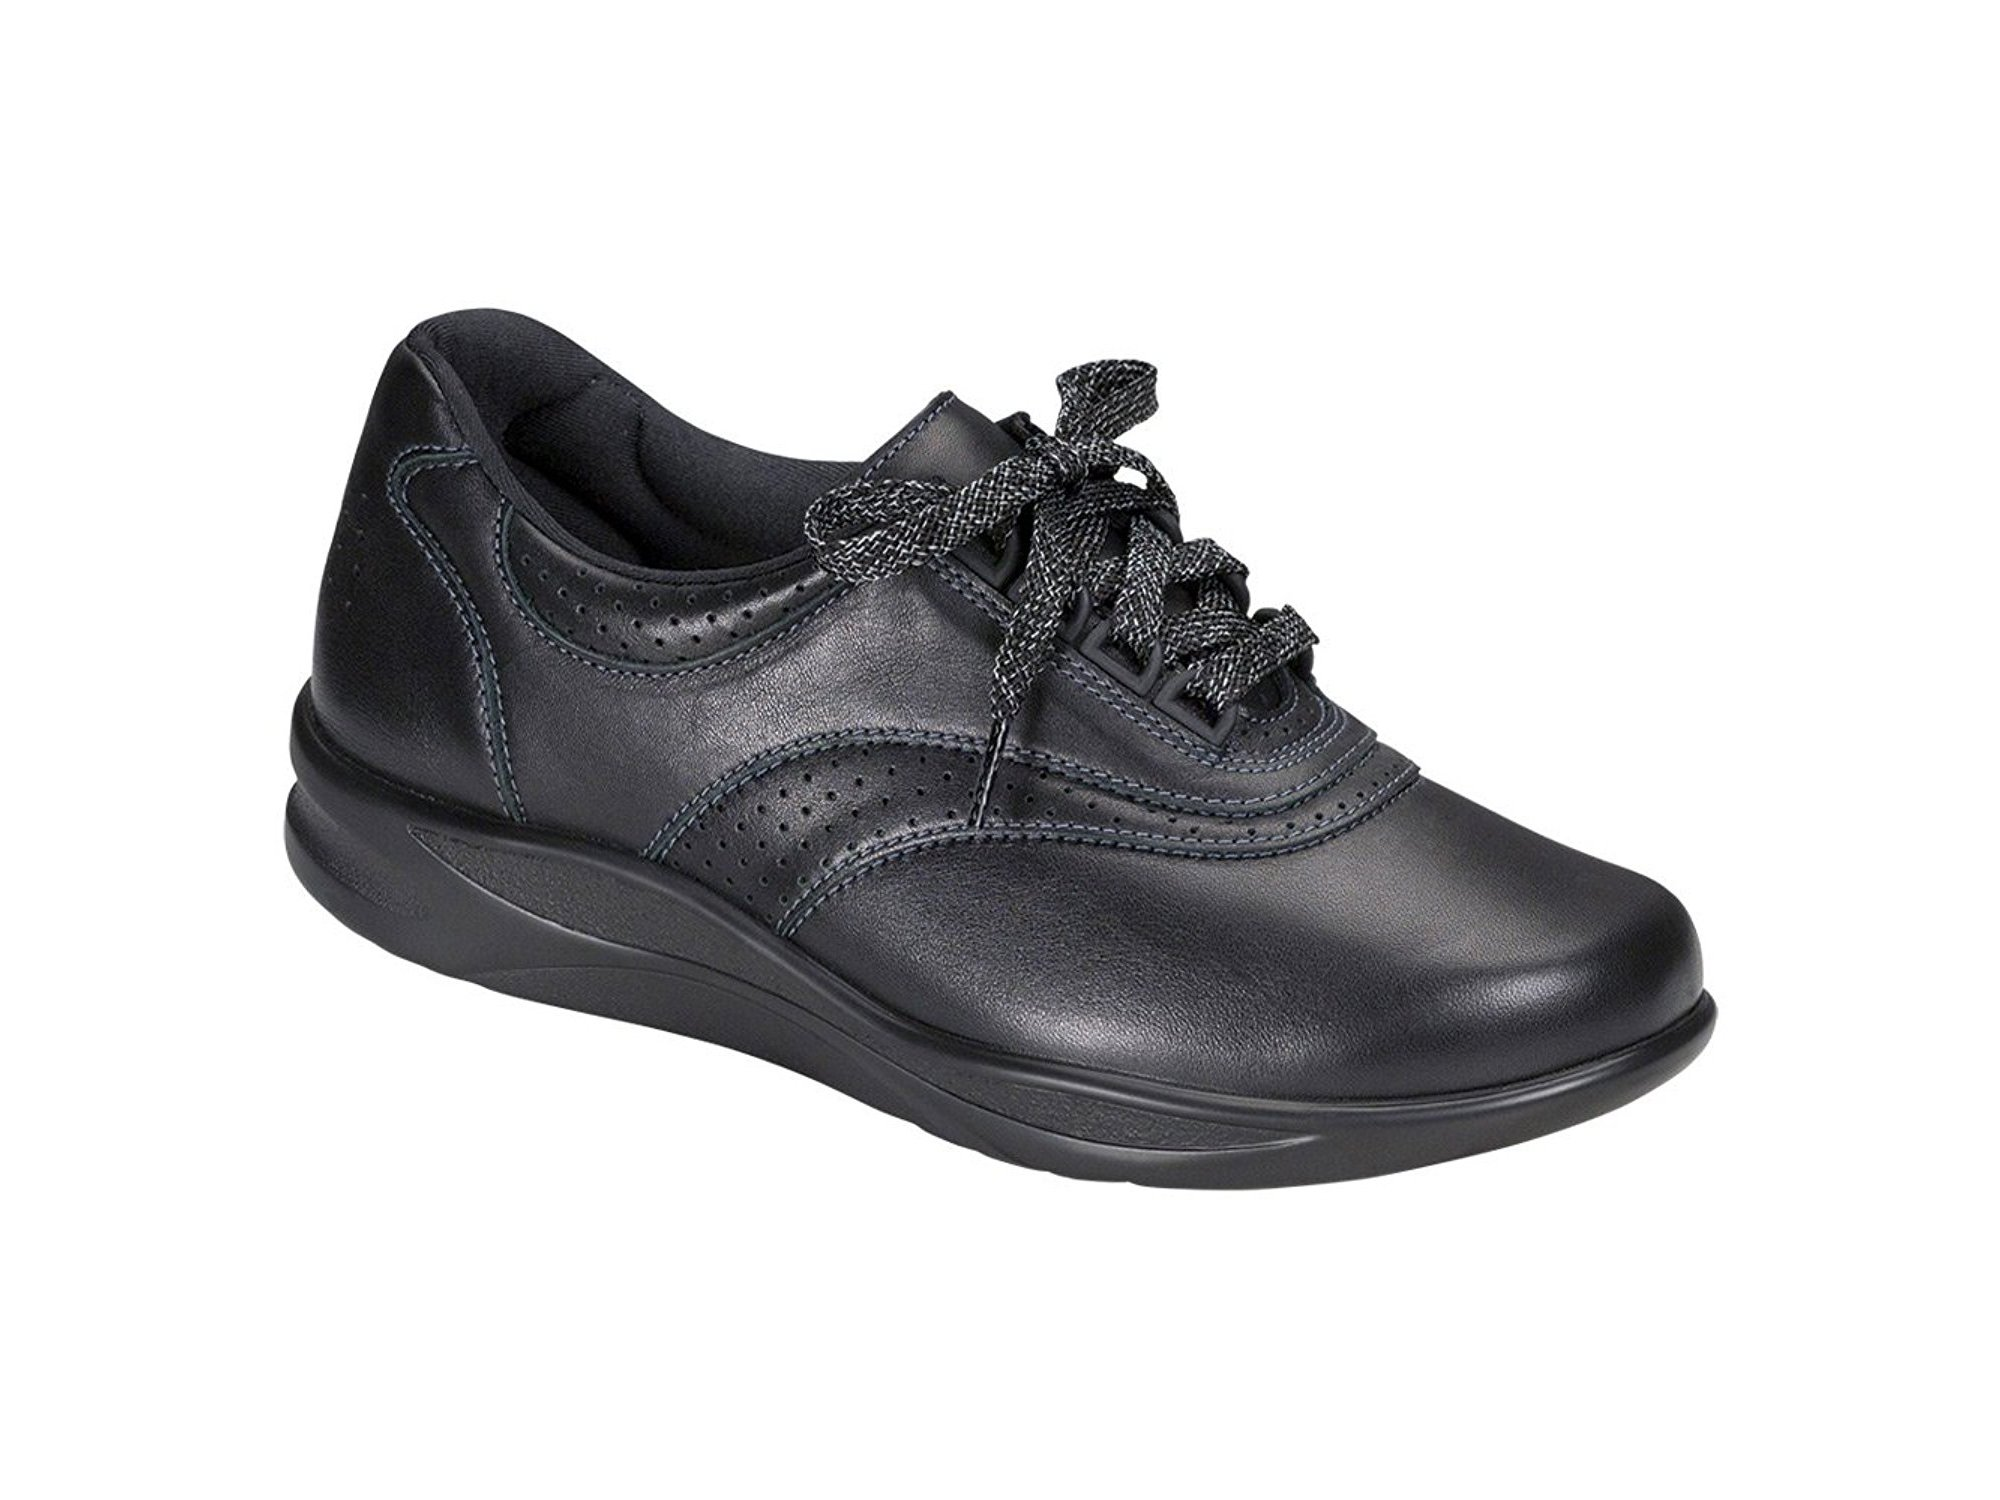 e1d19f68a8fc6 SAS Womens Walk Easy Low Top Lace Up Walking Shoes, Black, Size 8.5